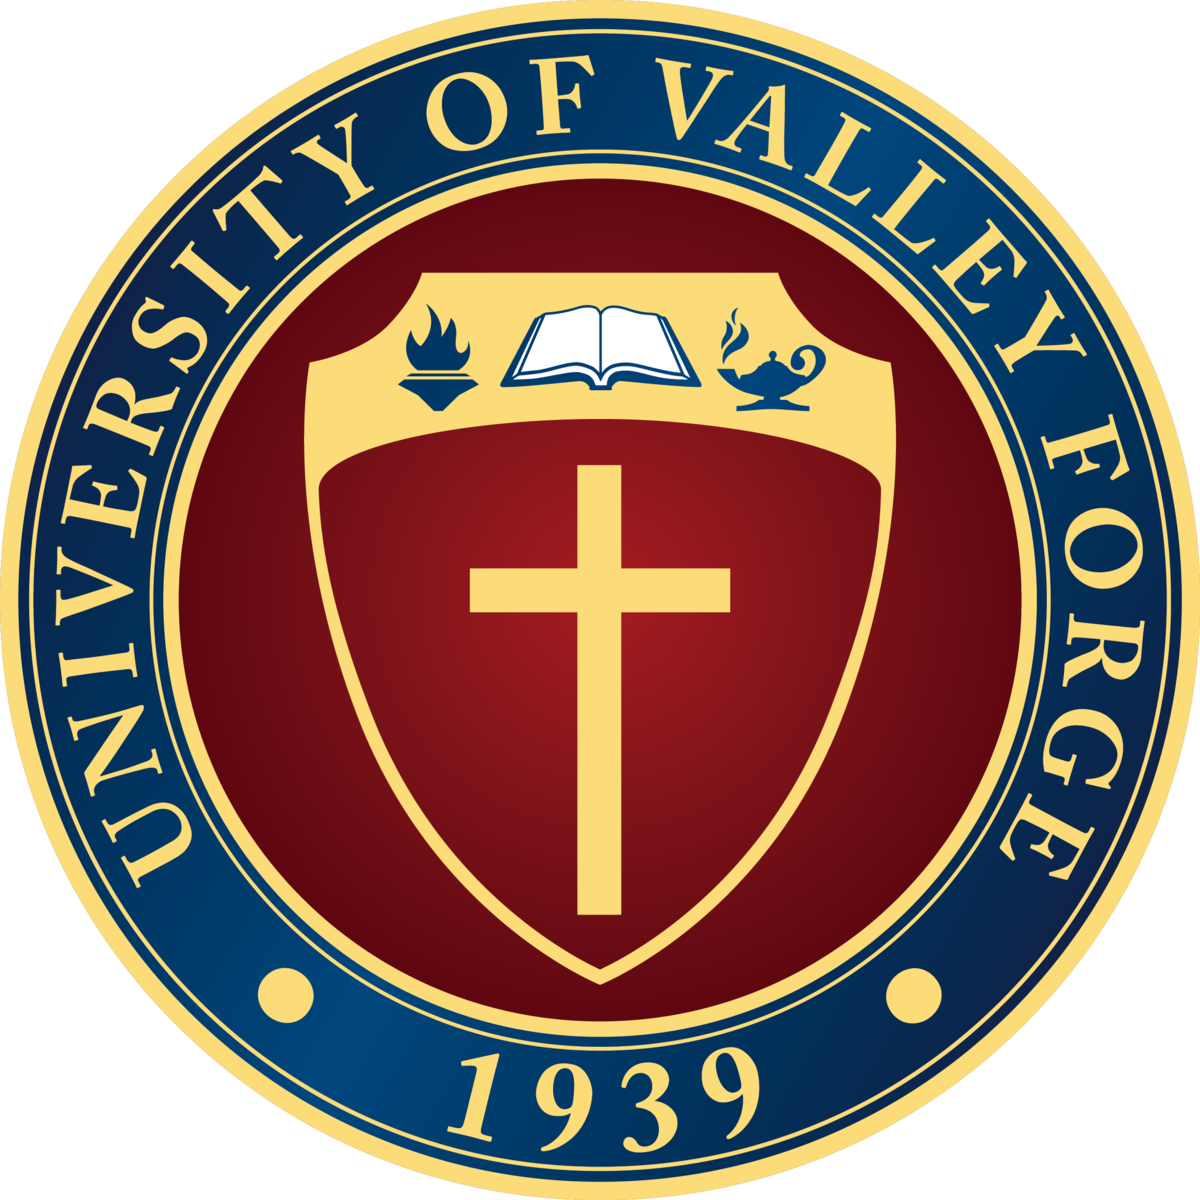 Valley Forge Christian College >> University of Valley Forge - Wikipedia